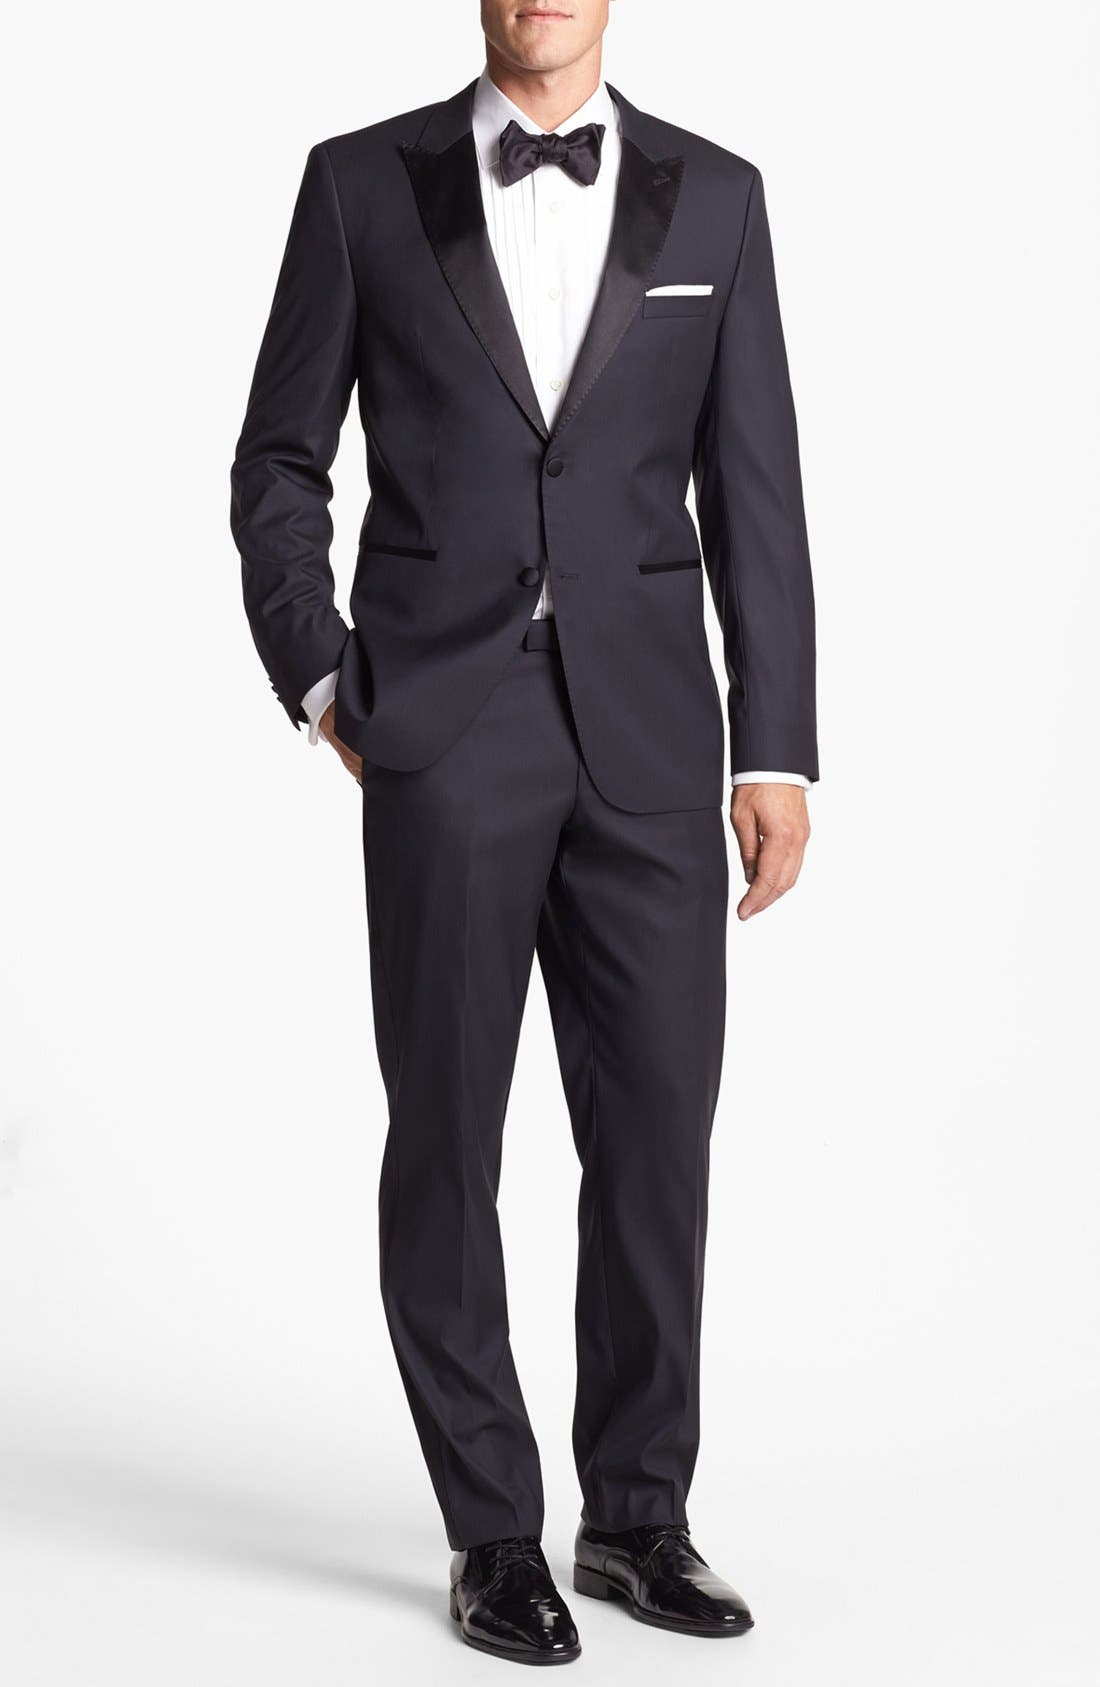 Alternate Image 1 Selected - BOSS HUGO BOSS 'Actor/Step' Trim Fit Tuxedo